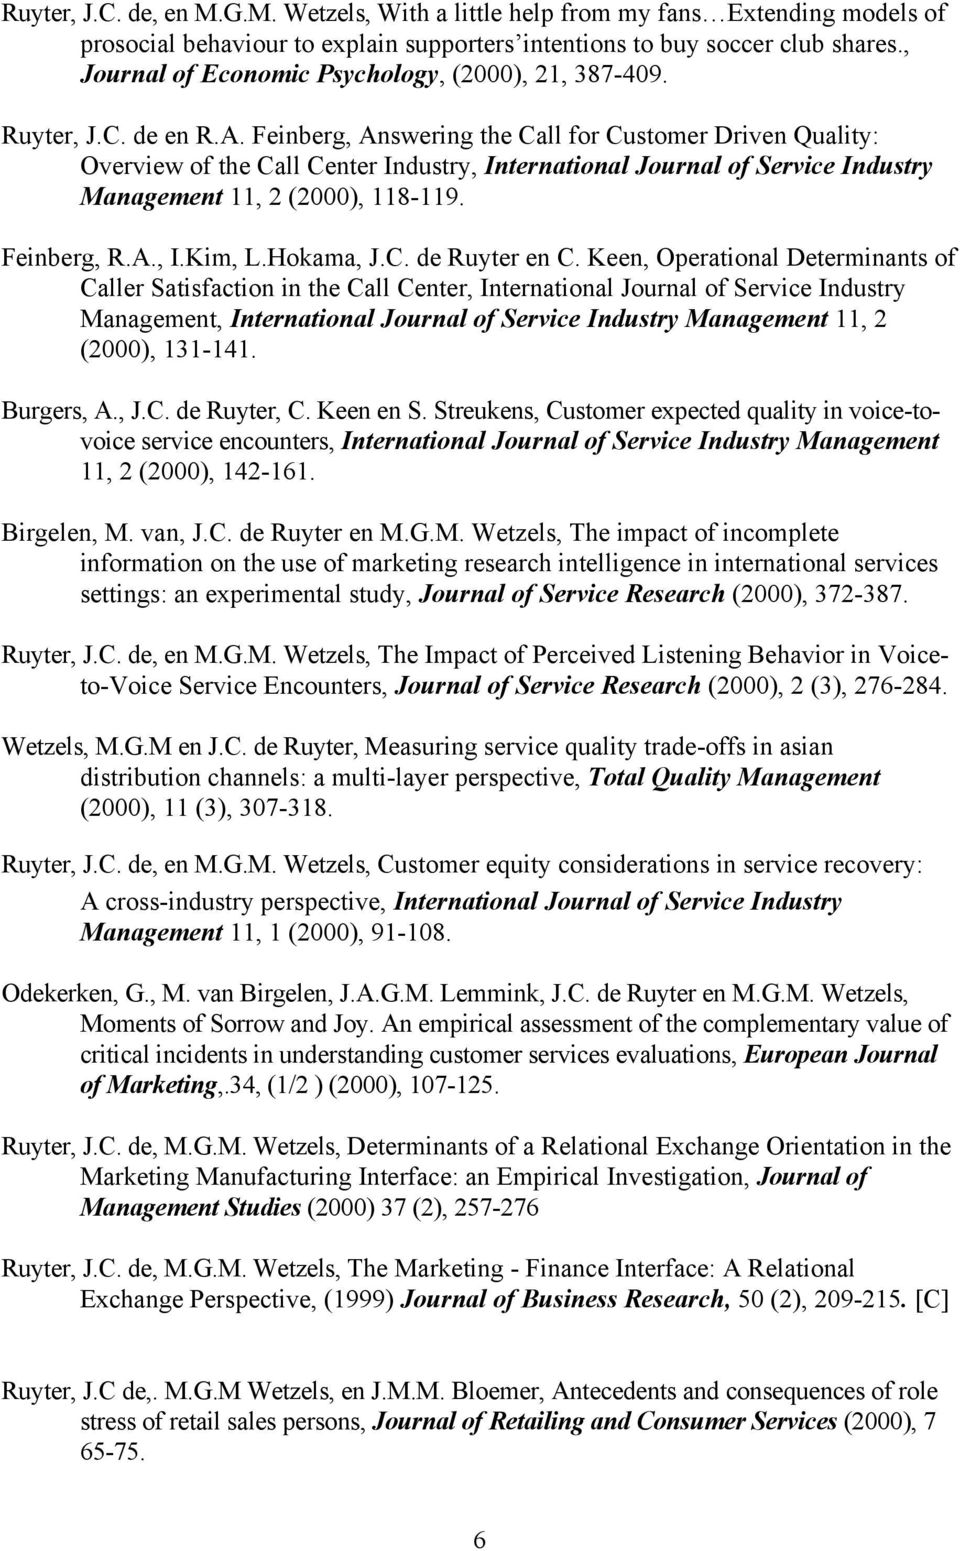 Feinberg, Answering the Call for Customer Driven Quality: Overview of the Call Center Industry, International Journal of Service Industry Management 11, 2 (2000), 118-119. Feinberg, R.A., I.Kim, L.